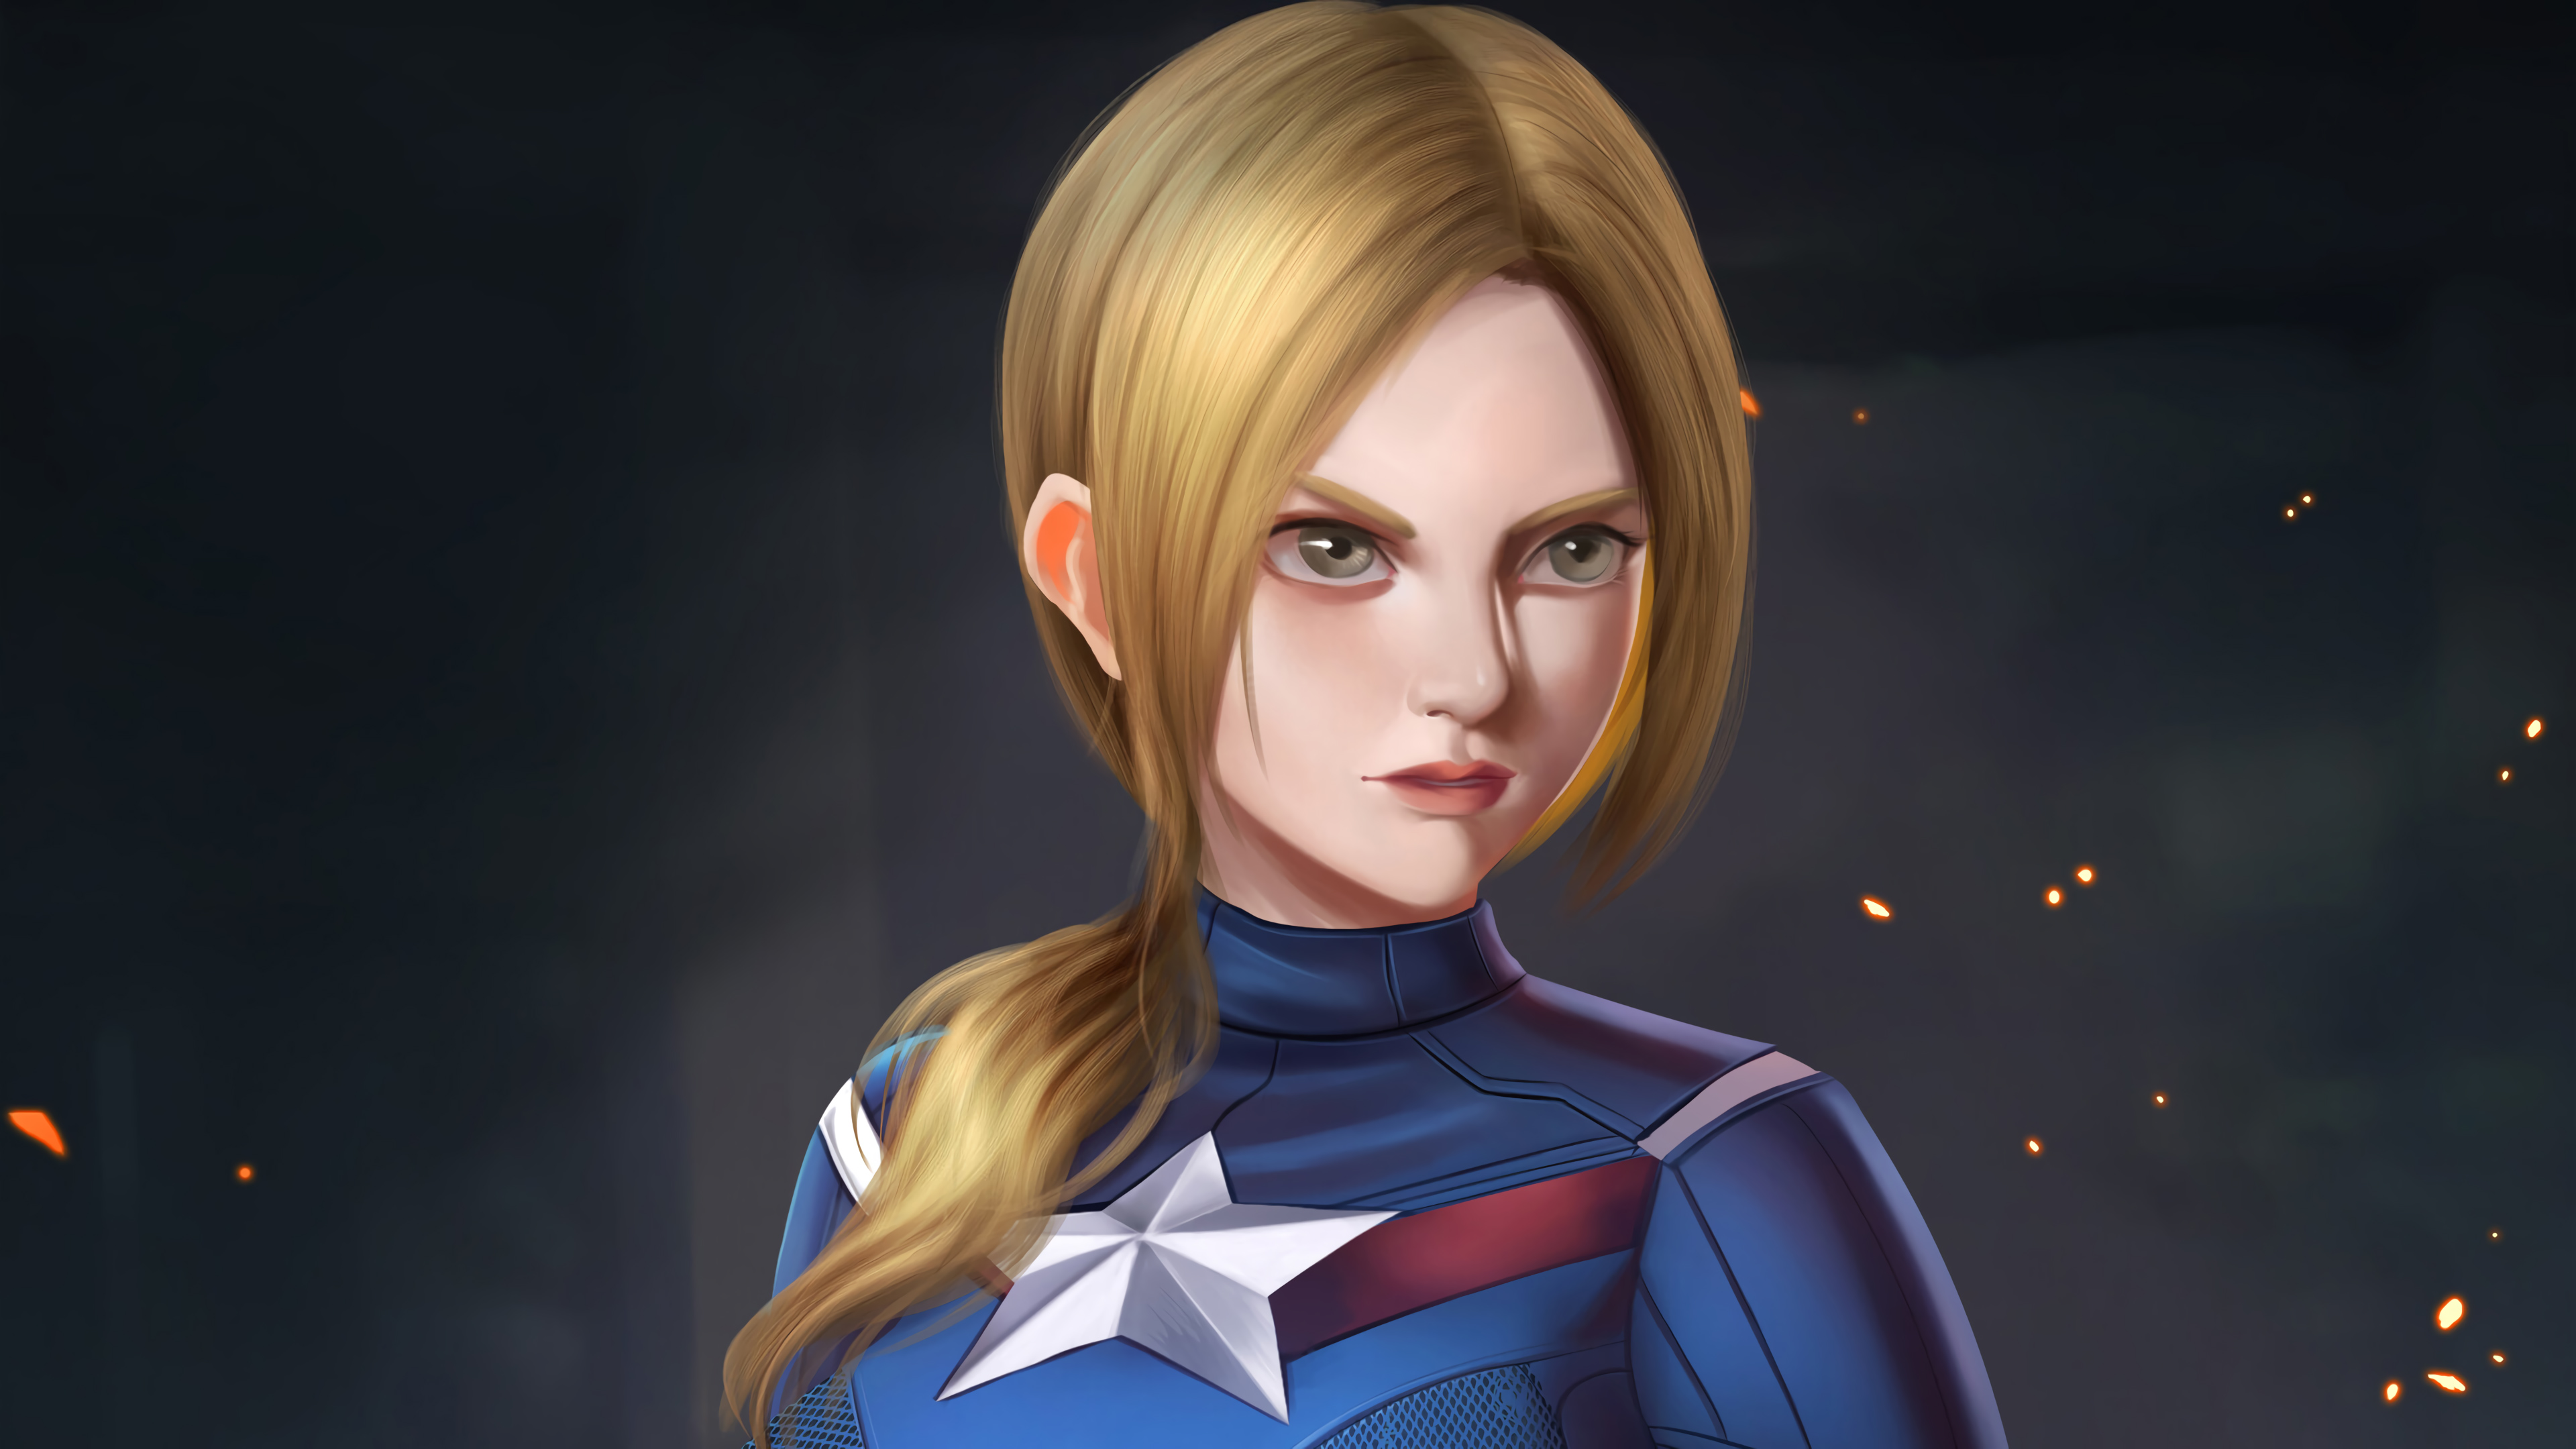 lady captain america 1568054096 - Lady Captain America - superheroes wallpapers, hd-wallpapers, captain america wallpapers, artwork wallpapers, artstation wallpapers, 4k-wallpapers